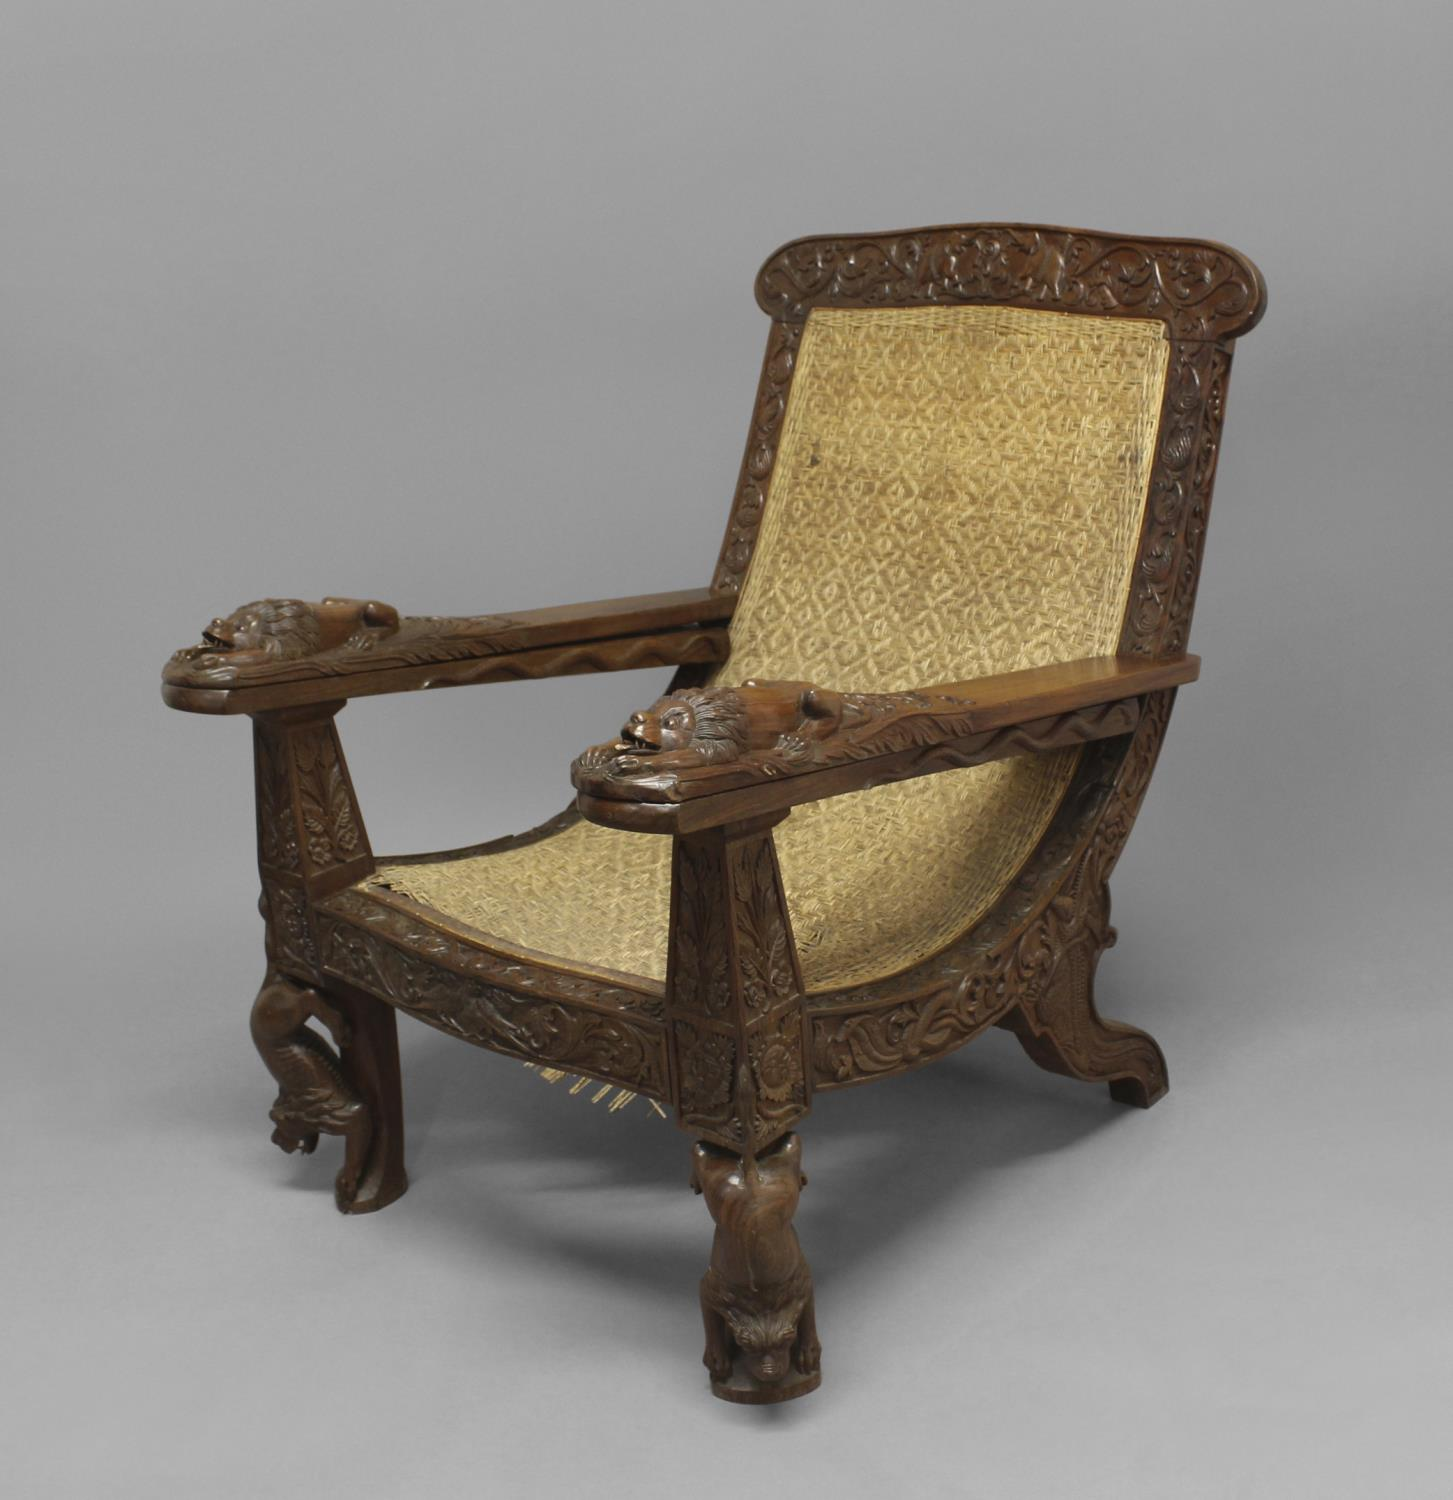 A LATE 19TH/EARLY 20TH CENTURY TEAK PLANTERS CHAIR. A teak planters chair with elaborately carved - Image 2 of 2